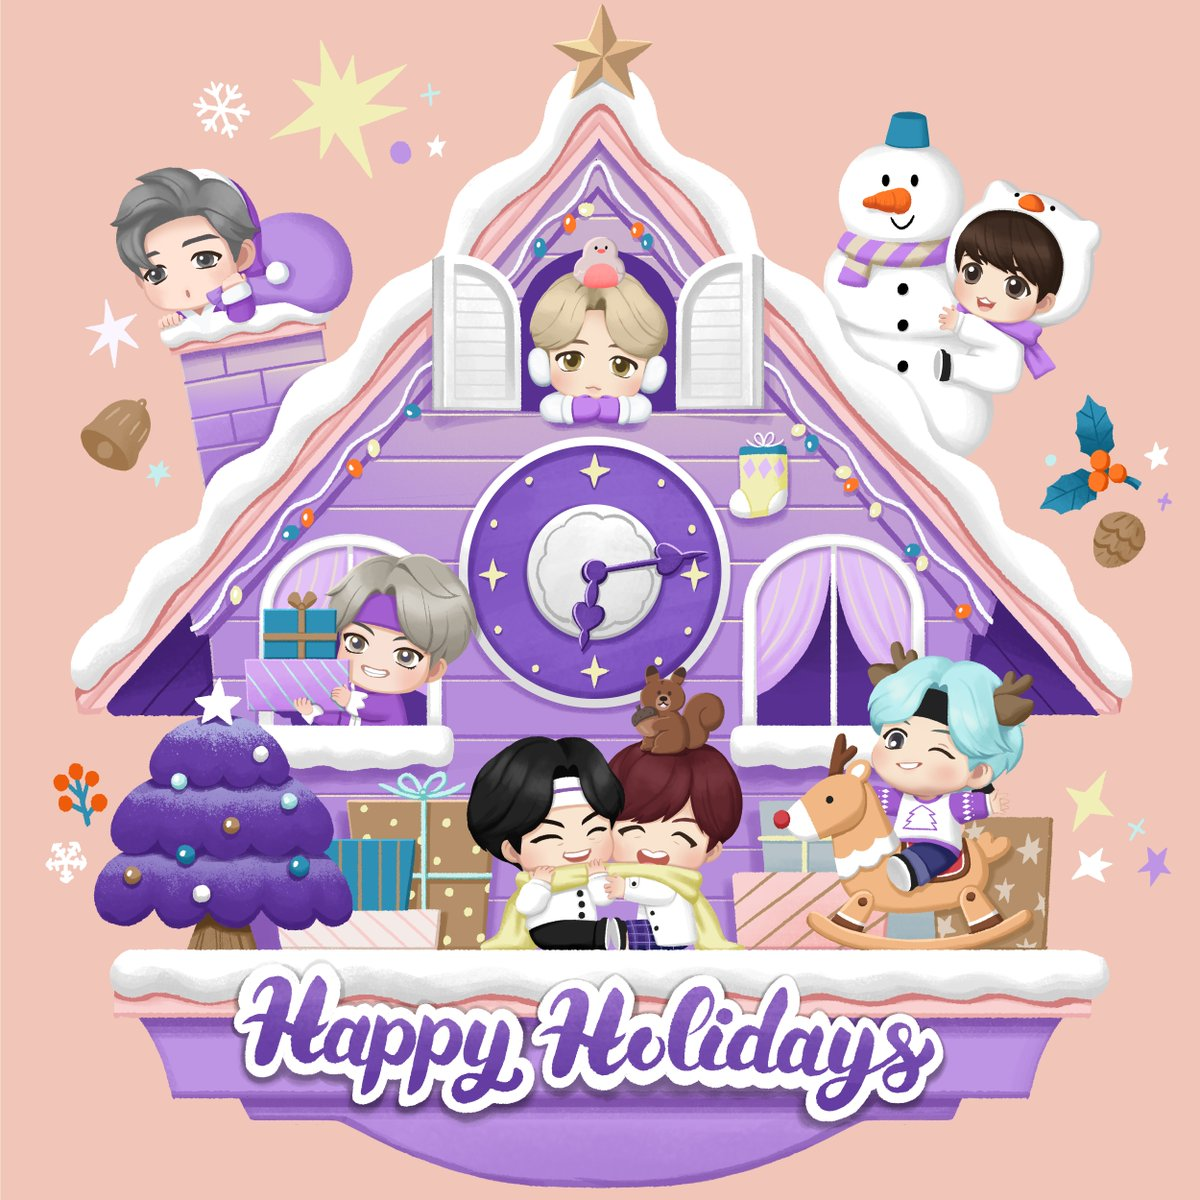 [#Behind_the_Magic_Door]  Tick..tock... Now it's time to charge your holiday spirit!   #TinyTAN #Purple_holiday #Holiday_mood